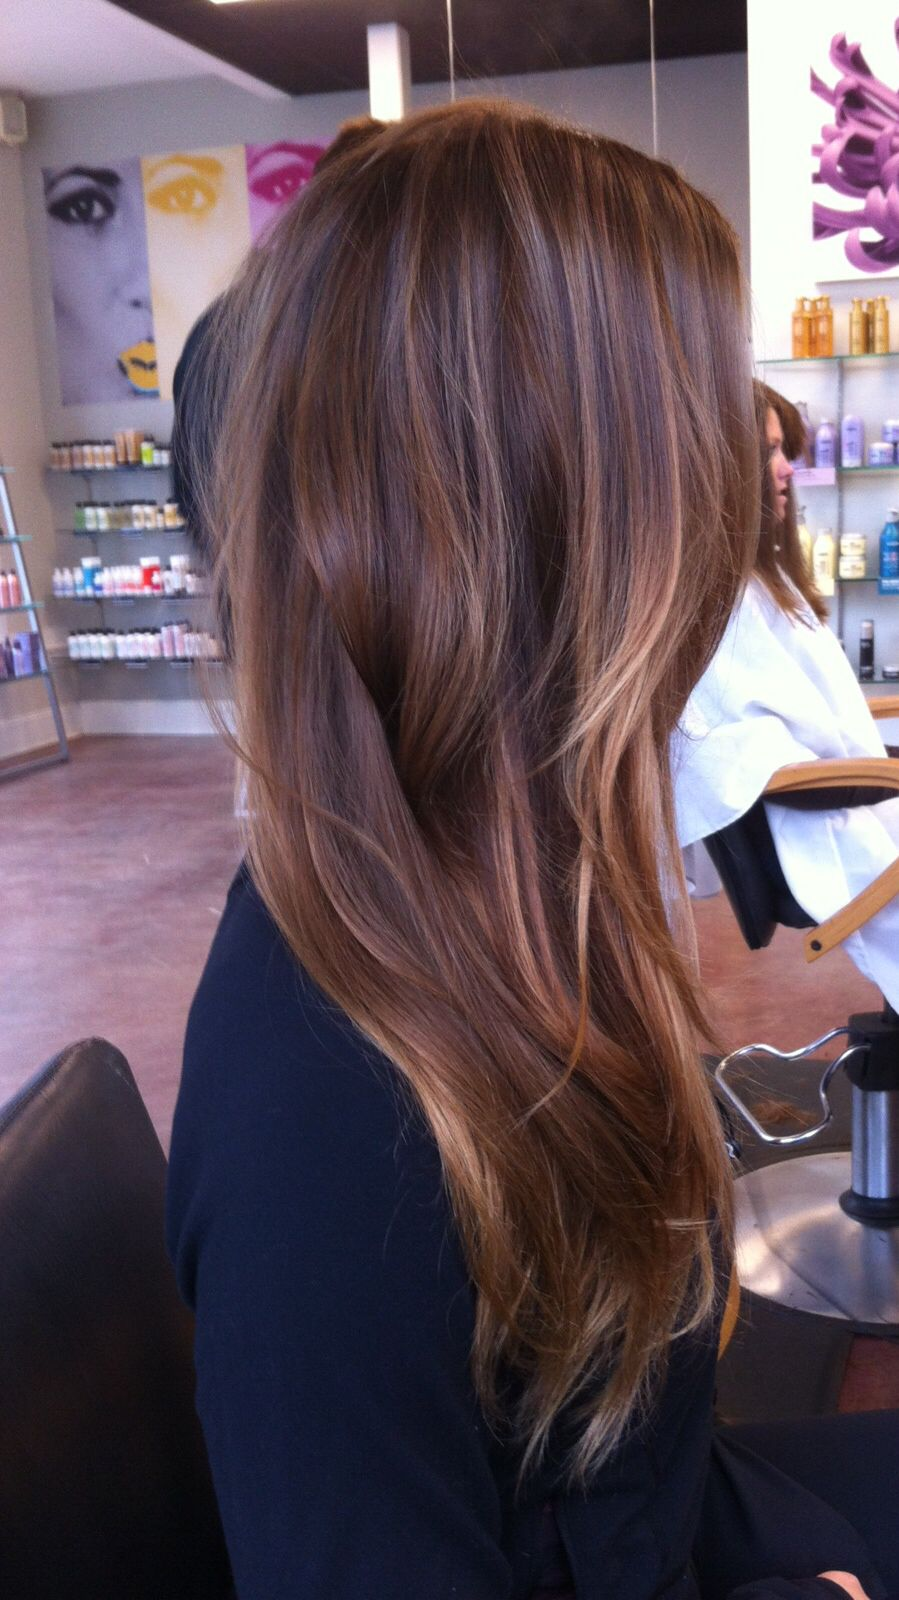 hottest hair color ideas for brown red blonde balayage